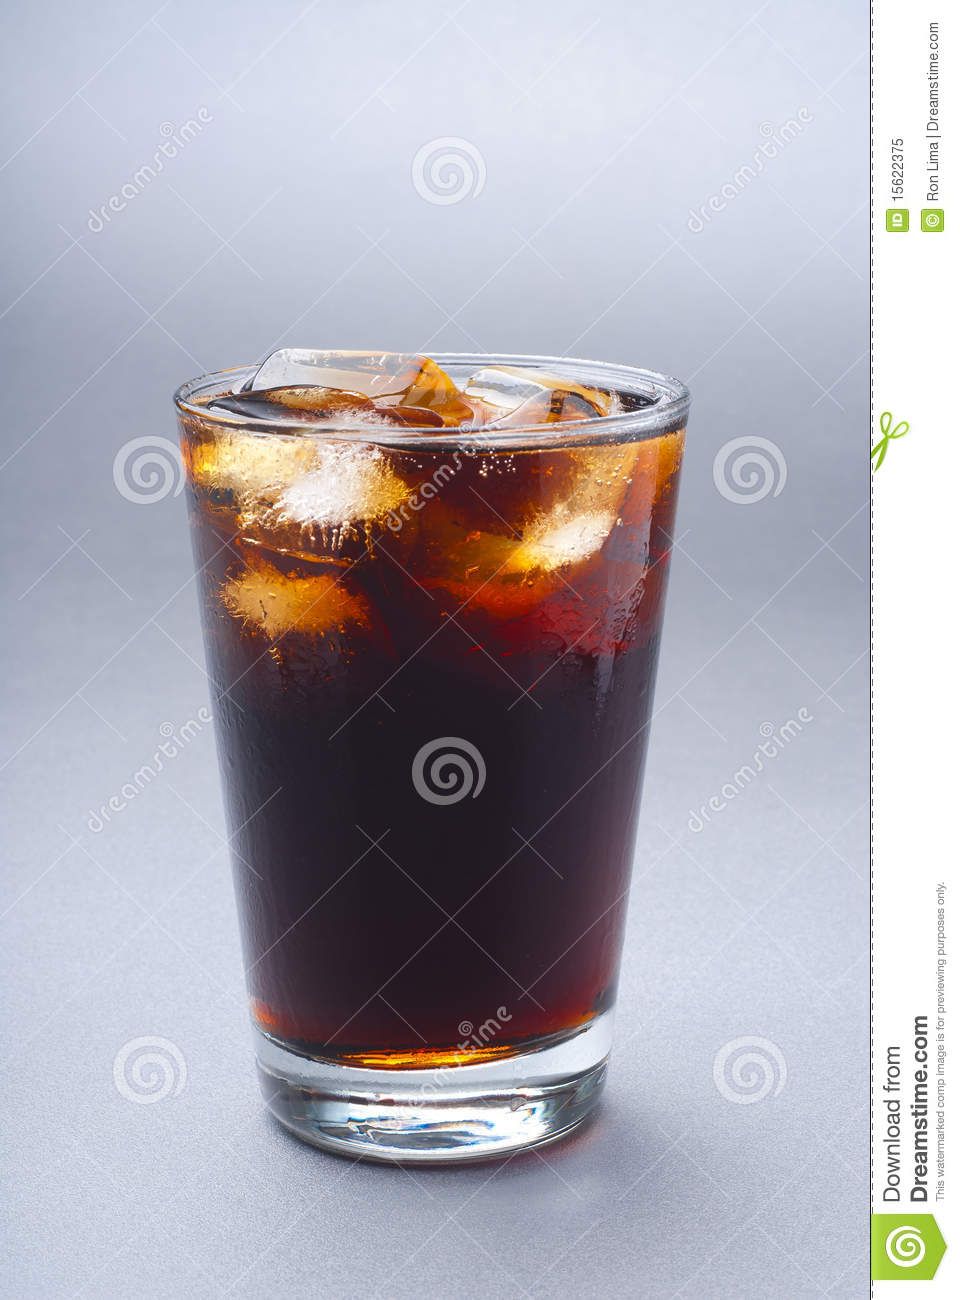 Glass of iced soda